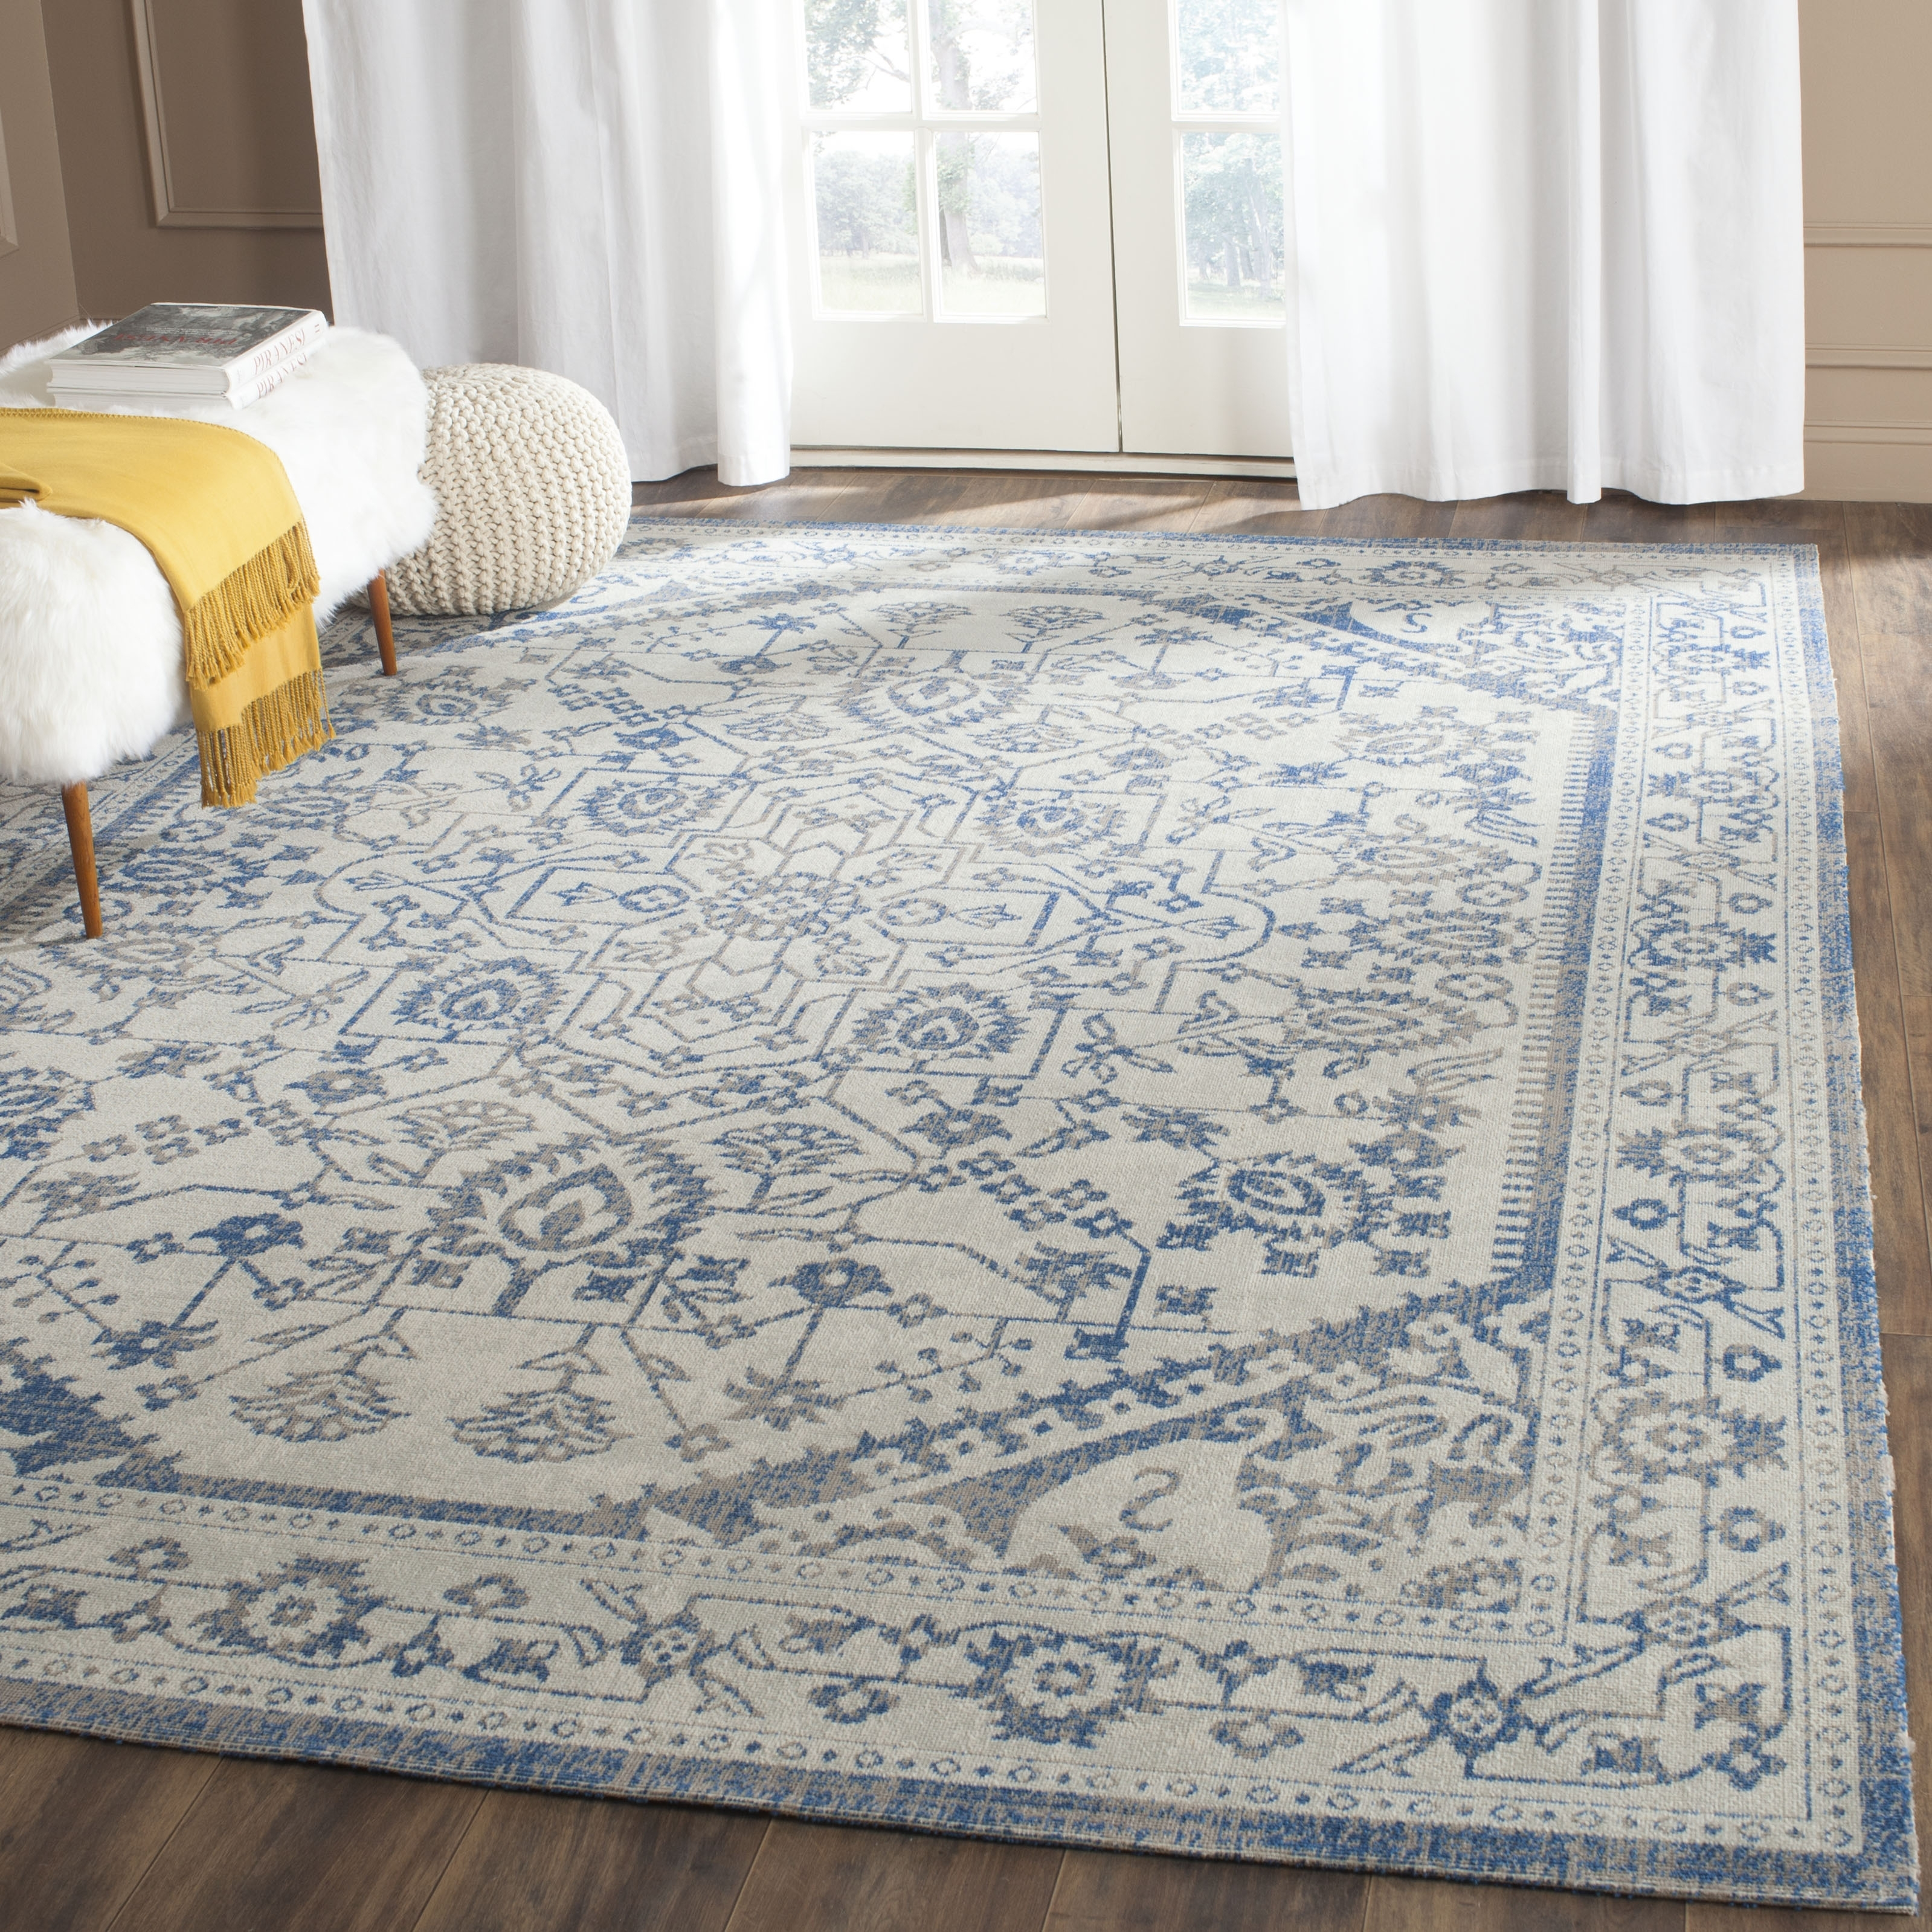 Featured Photo of Blue Wool Area Rug